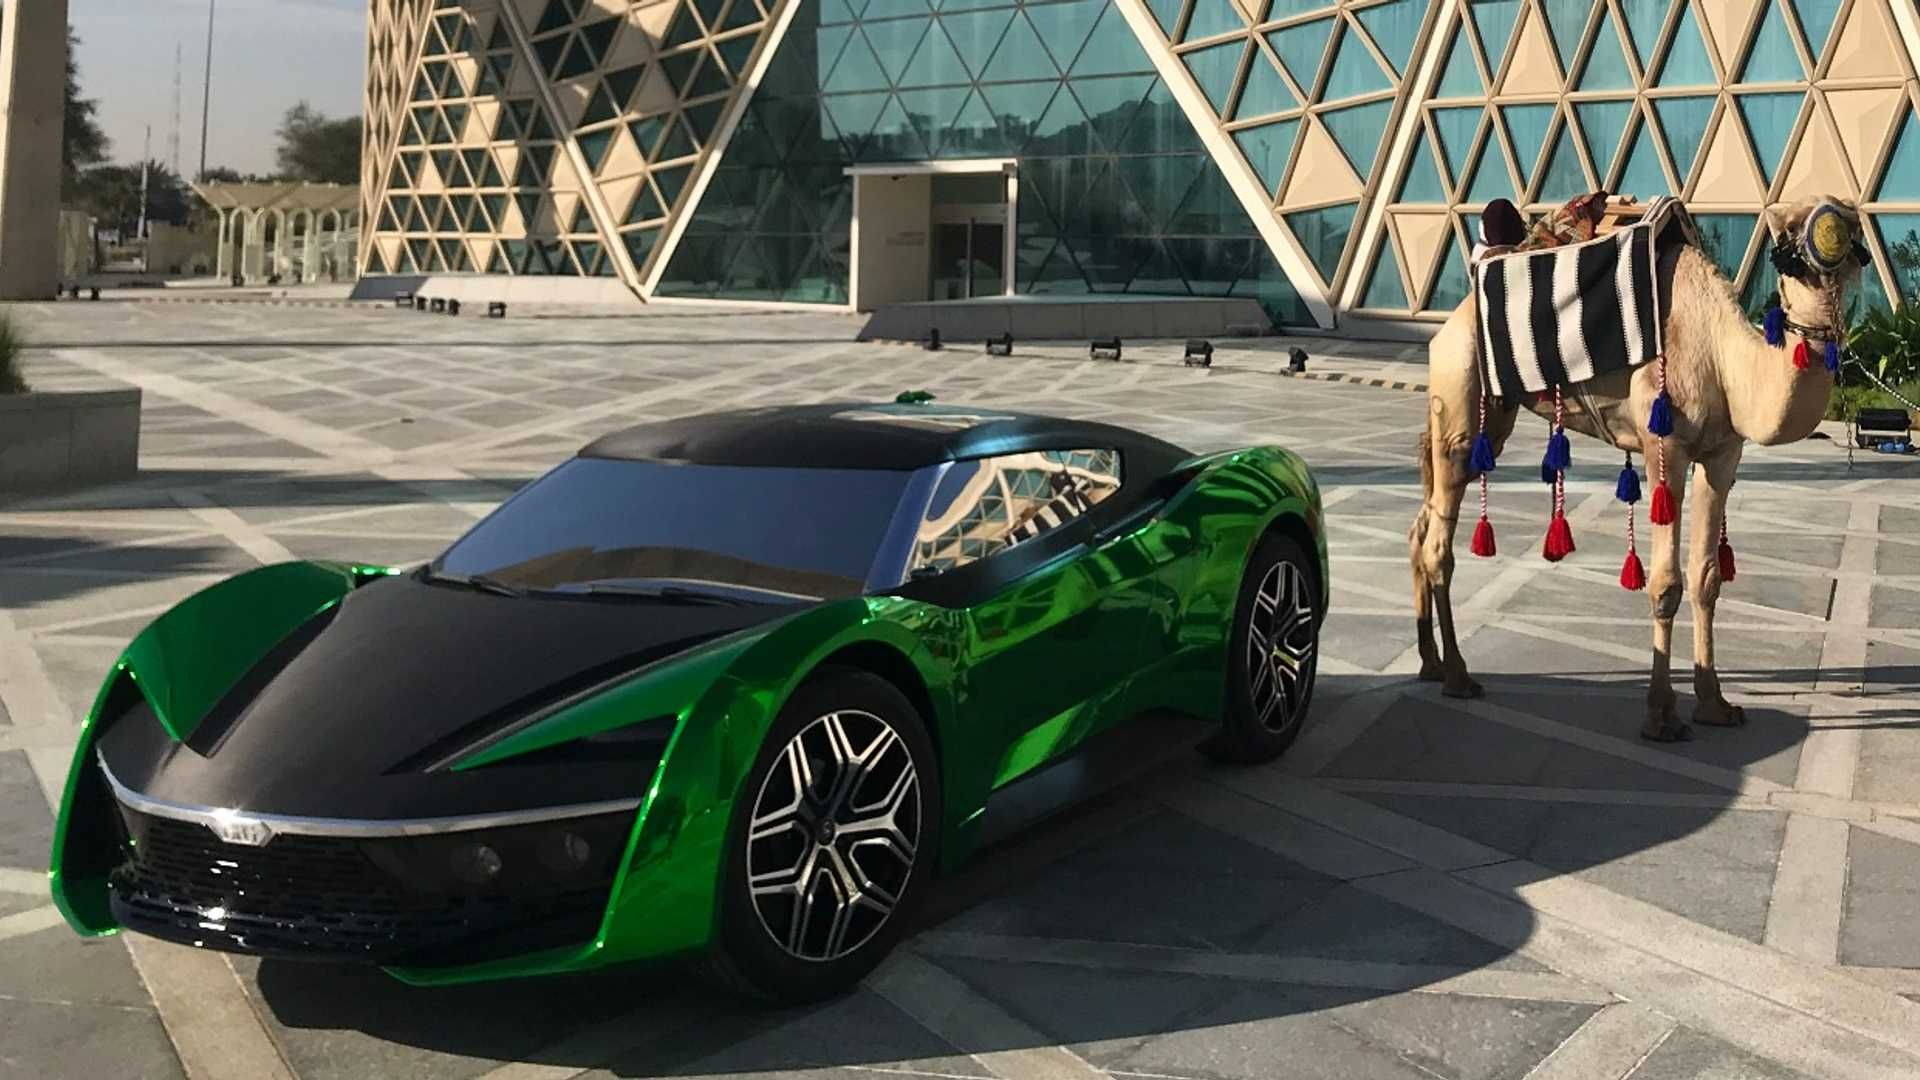 Supercar Blondie Takes Gfg Style S 2030 Saudi Arabia Car For A Spin Super Cars Auto Motor Und Sport Latest Cars